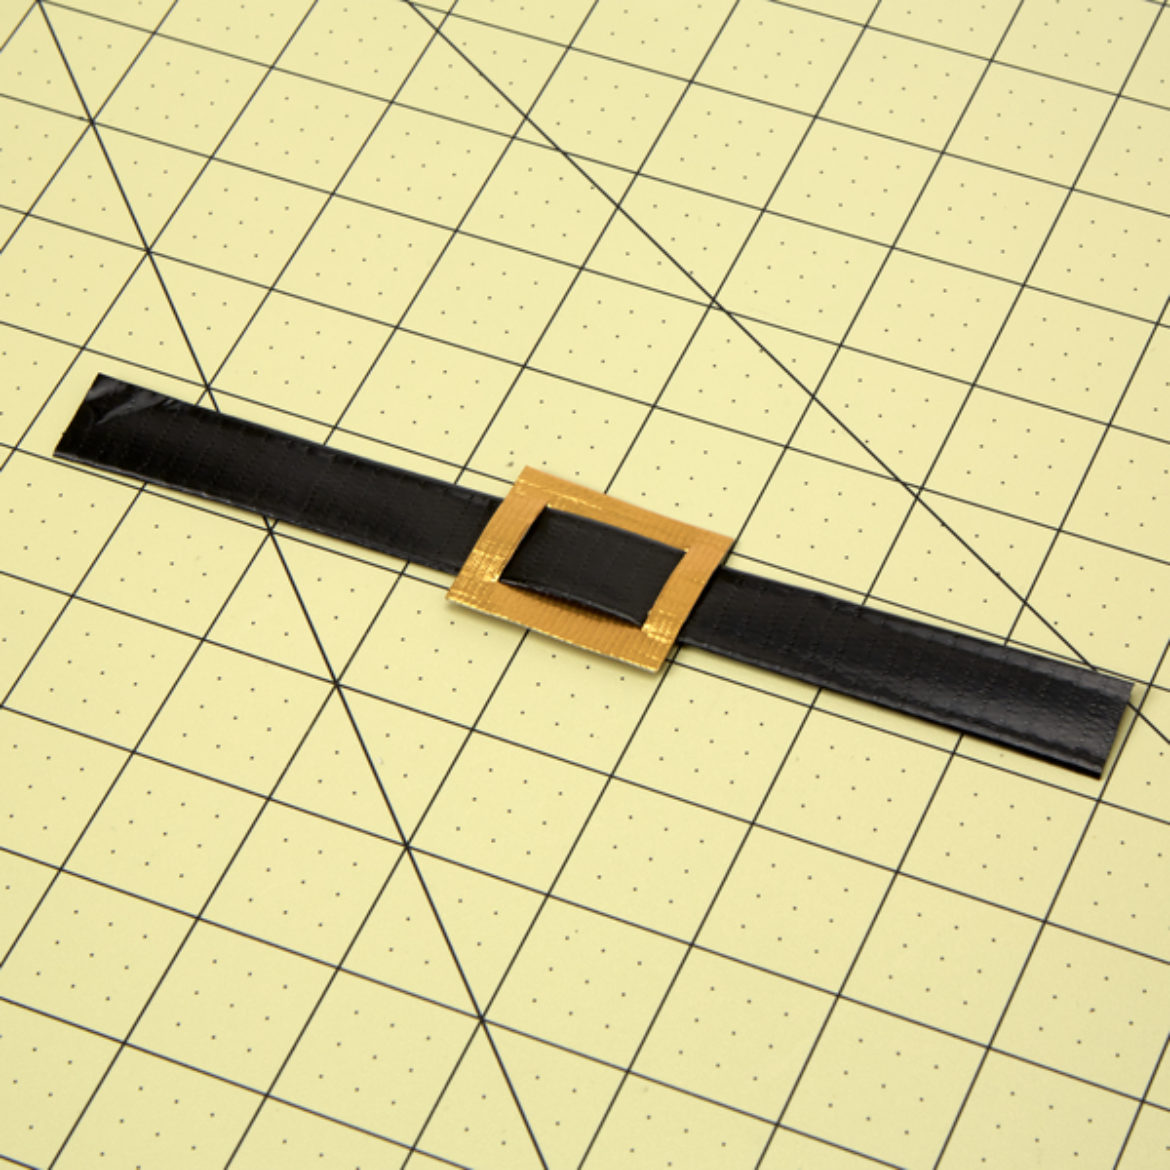 Cut two slits into the previous gold rectangle and feed the strap through to form a buckle and strap